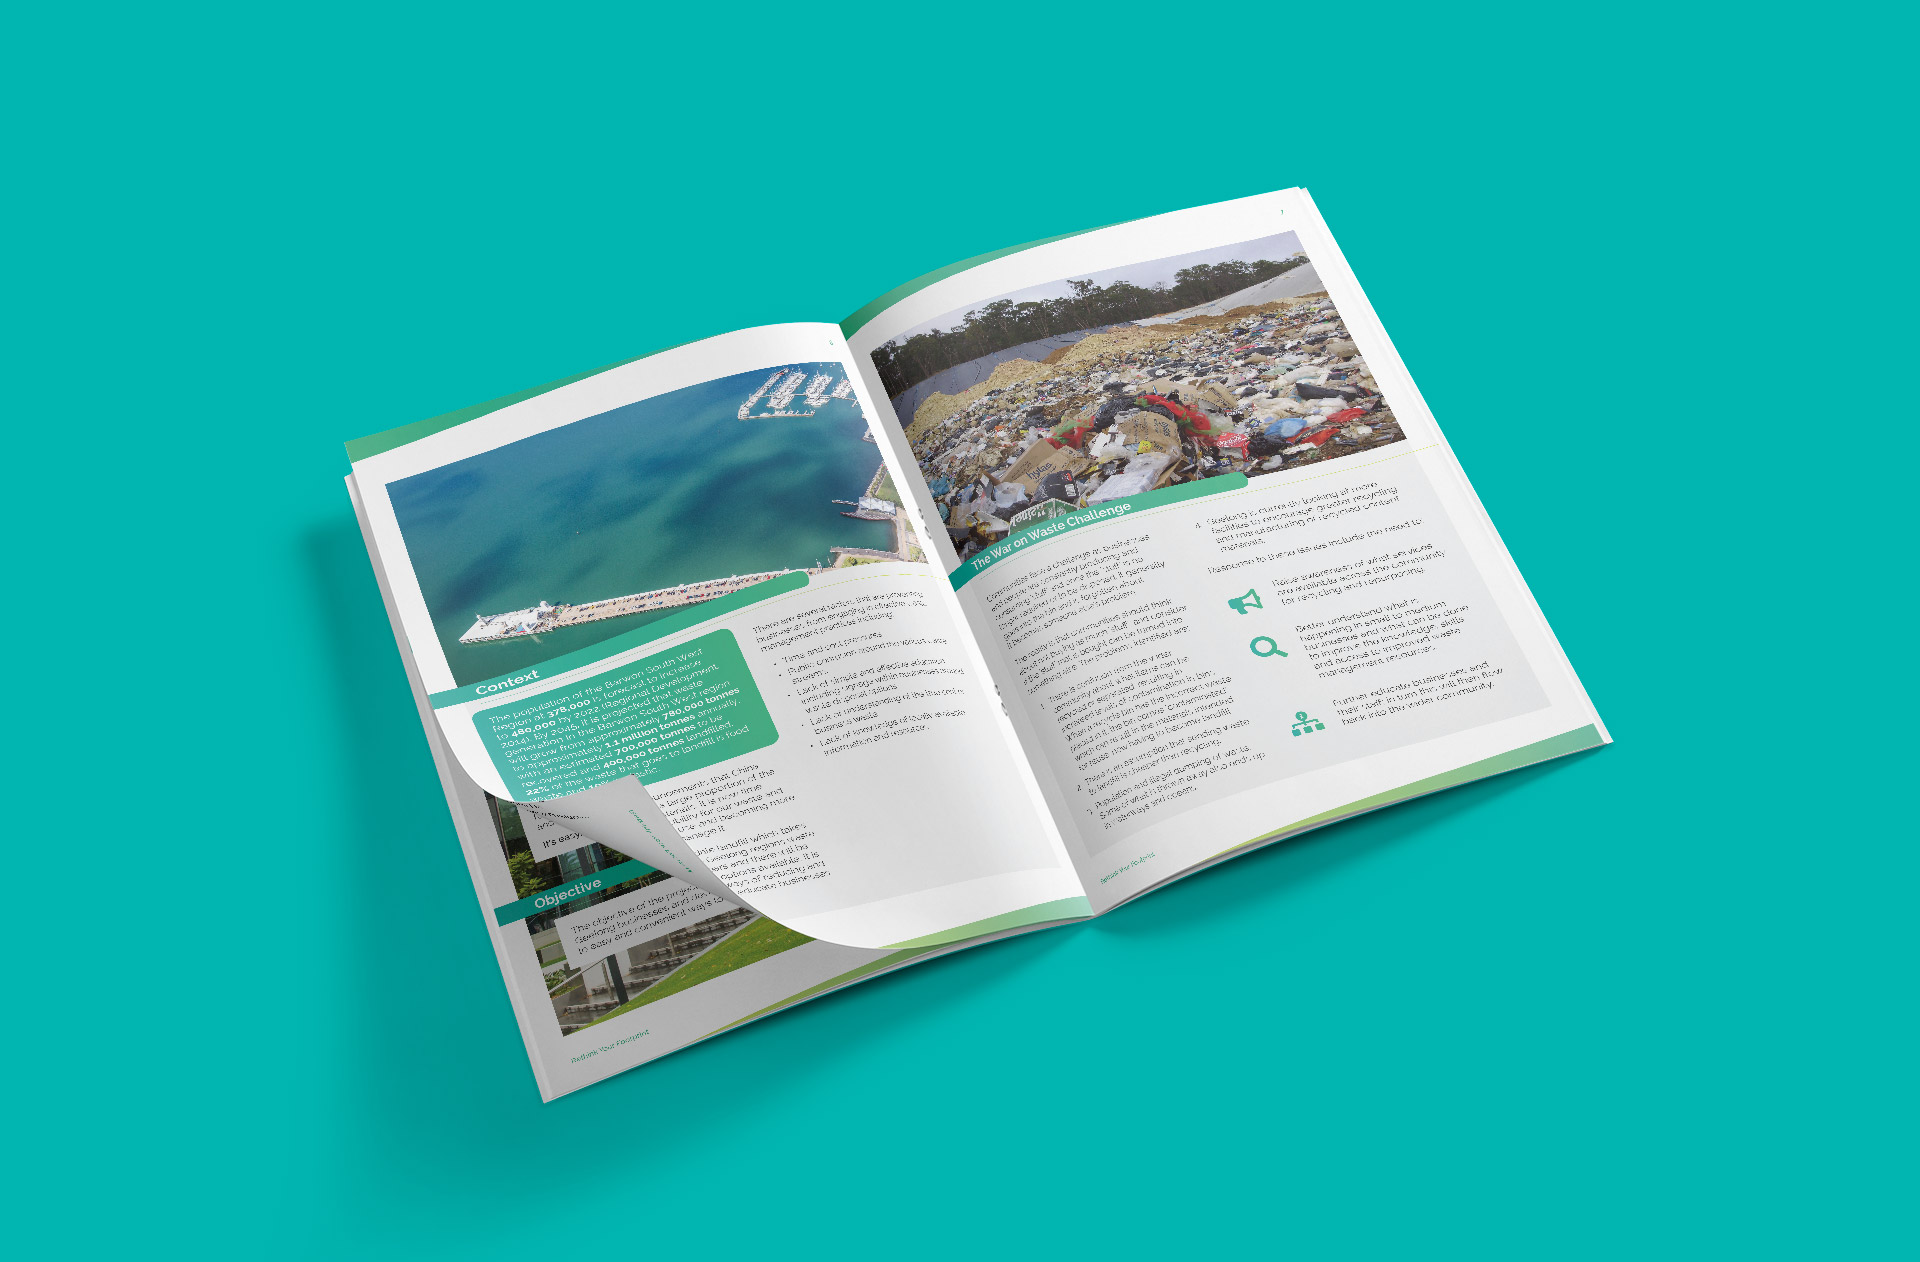 Leaders for Geelong 'Rethink Your Footprint' report